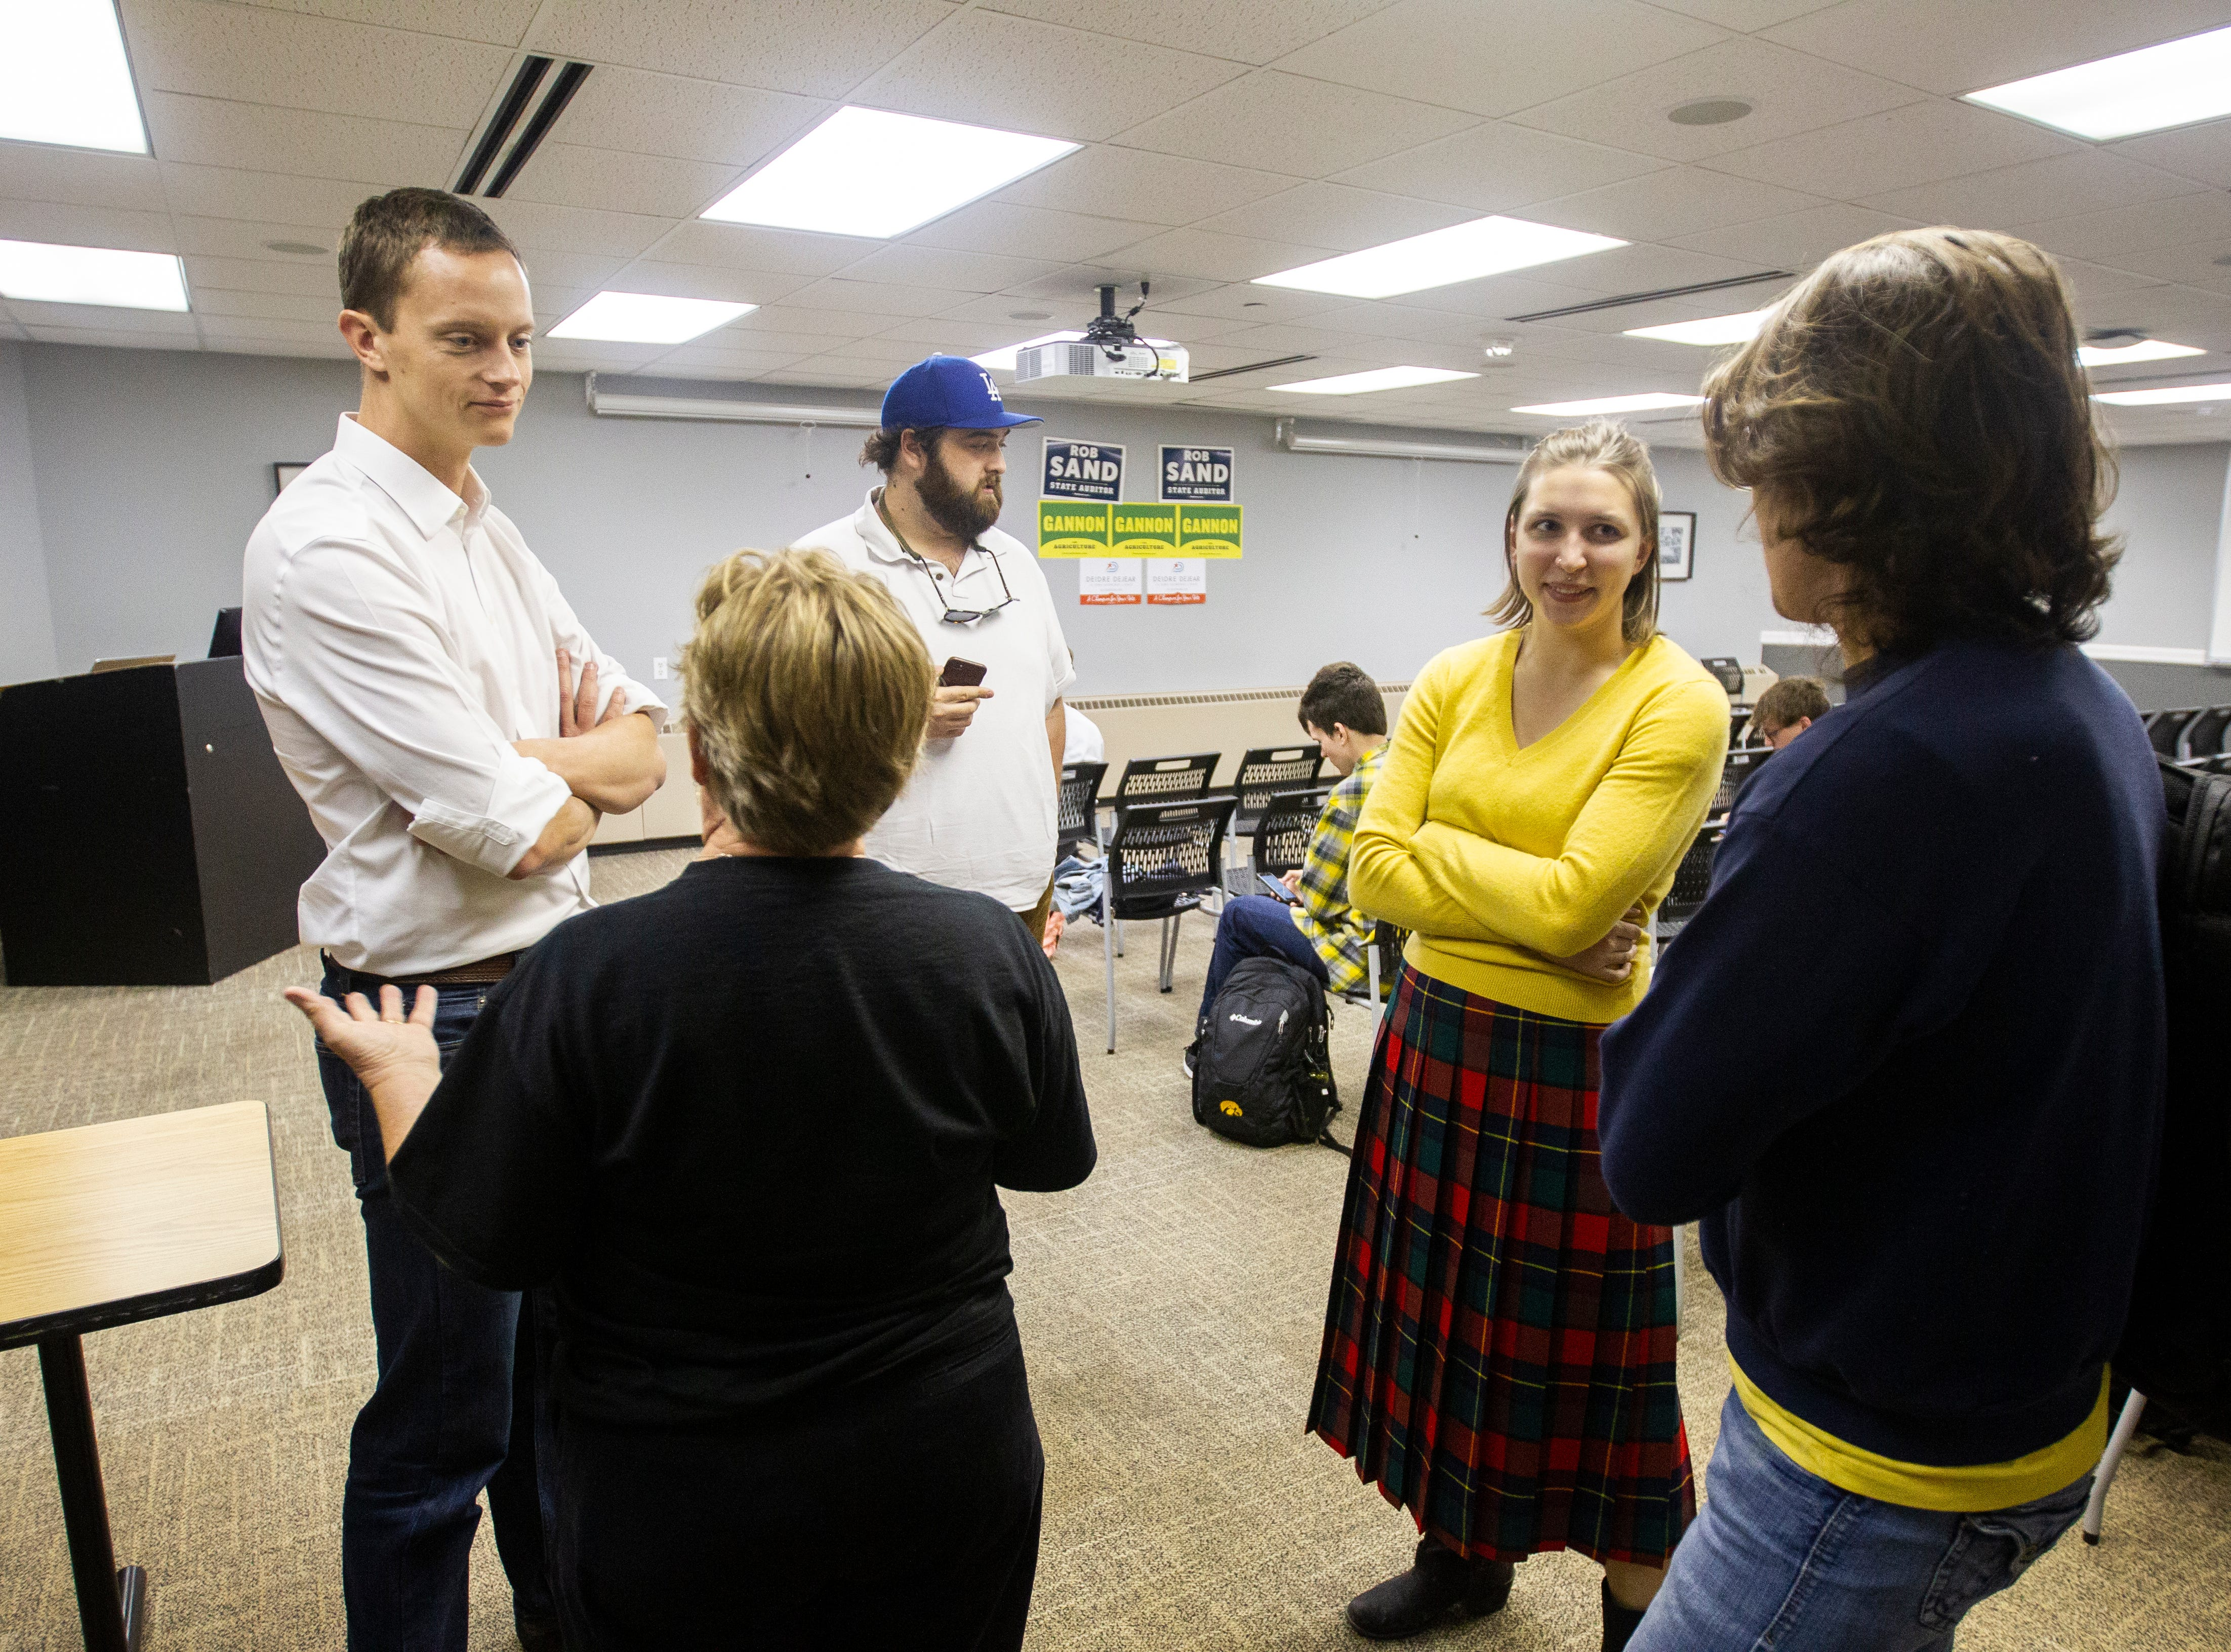 Rob Sand, Democratic candidate for Iowa state auditor, (from left) talks with Sue Dvorsky while UI students Kalena Meyer and Ryan Hall talk before an event on Wednesday, Sept. 26, 2018, at the Iowa Memorial Union on the University of Iowa campus in Iowa City.